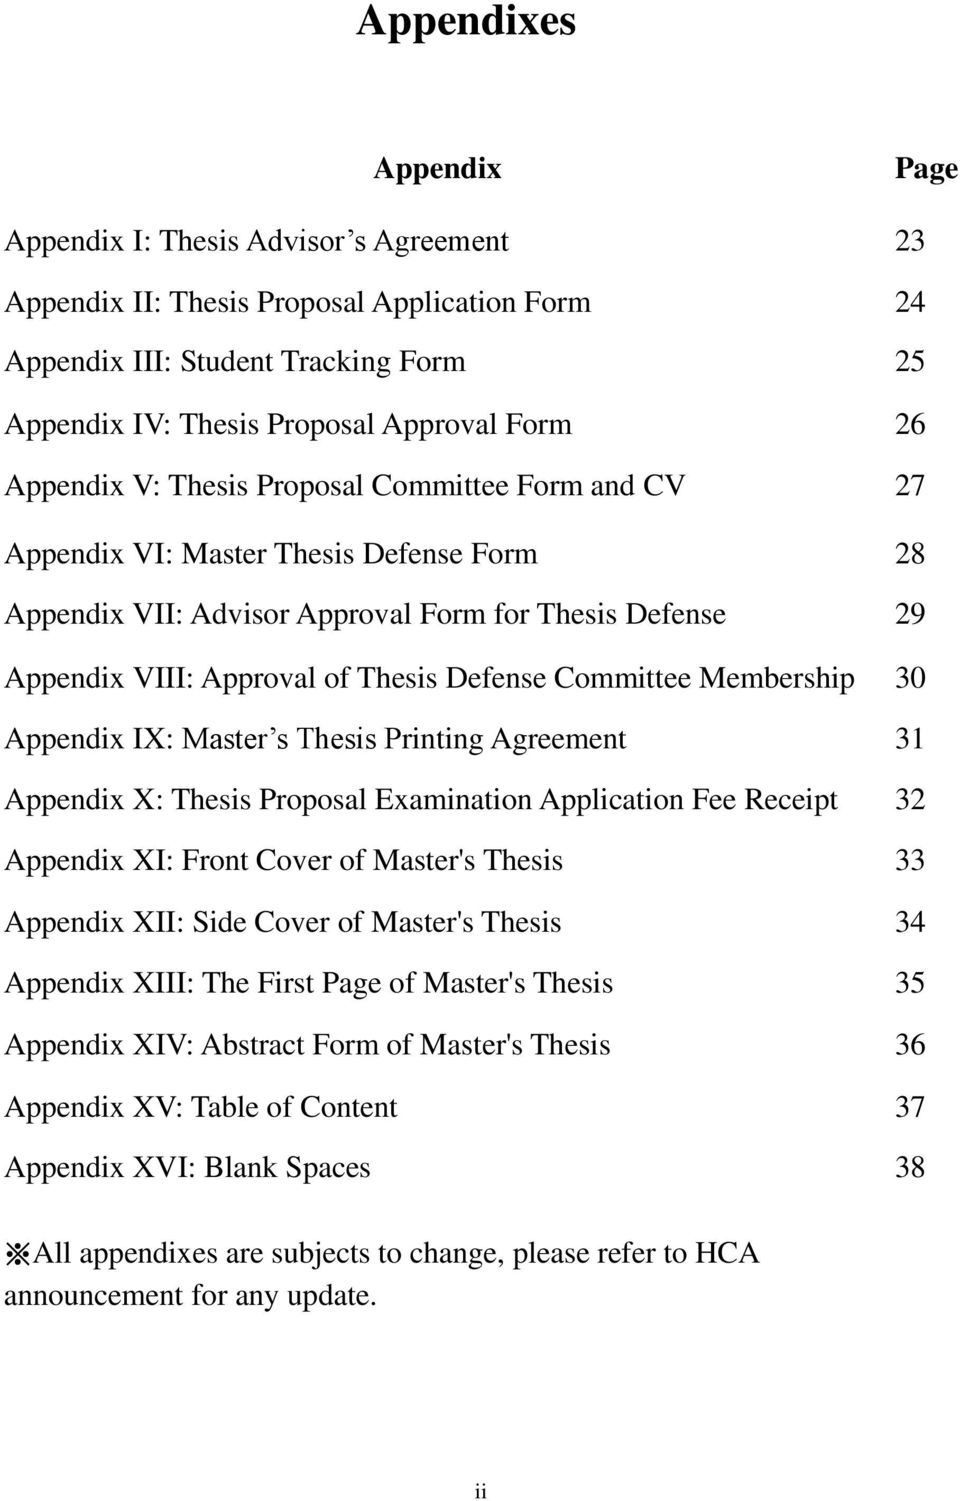 Committee Membership 30 Appendix IX: Master s Thesis Printing Agreement 31 Appendix X: Thesis Proposal Examination Application Fee Receipt 32 Appendix XI: Front Cover of Master's Thesis 33 Appendix